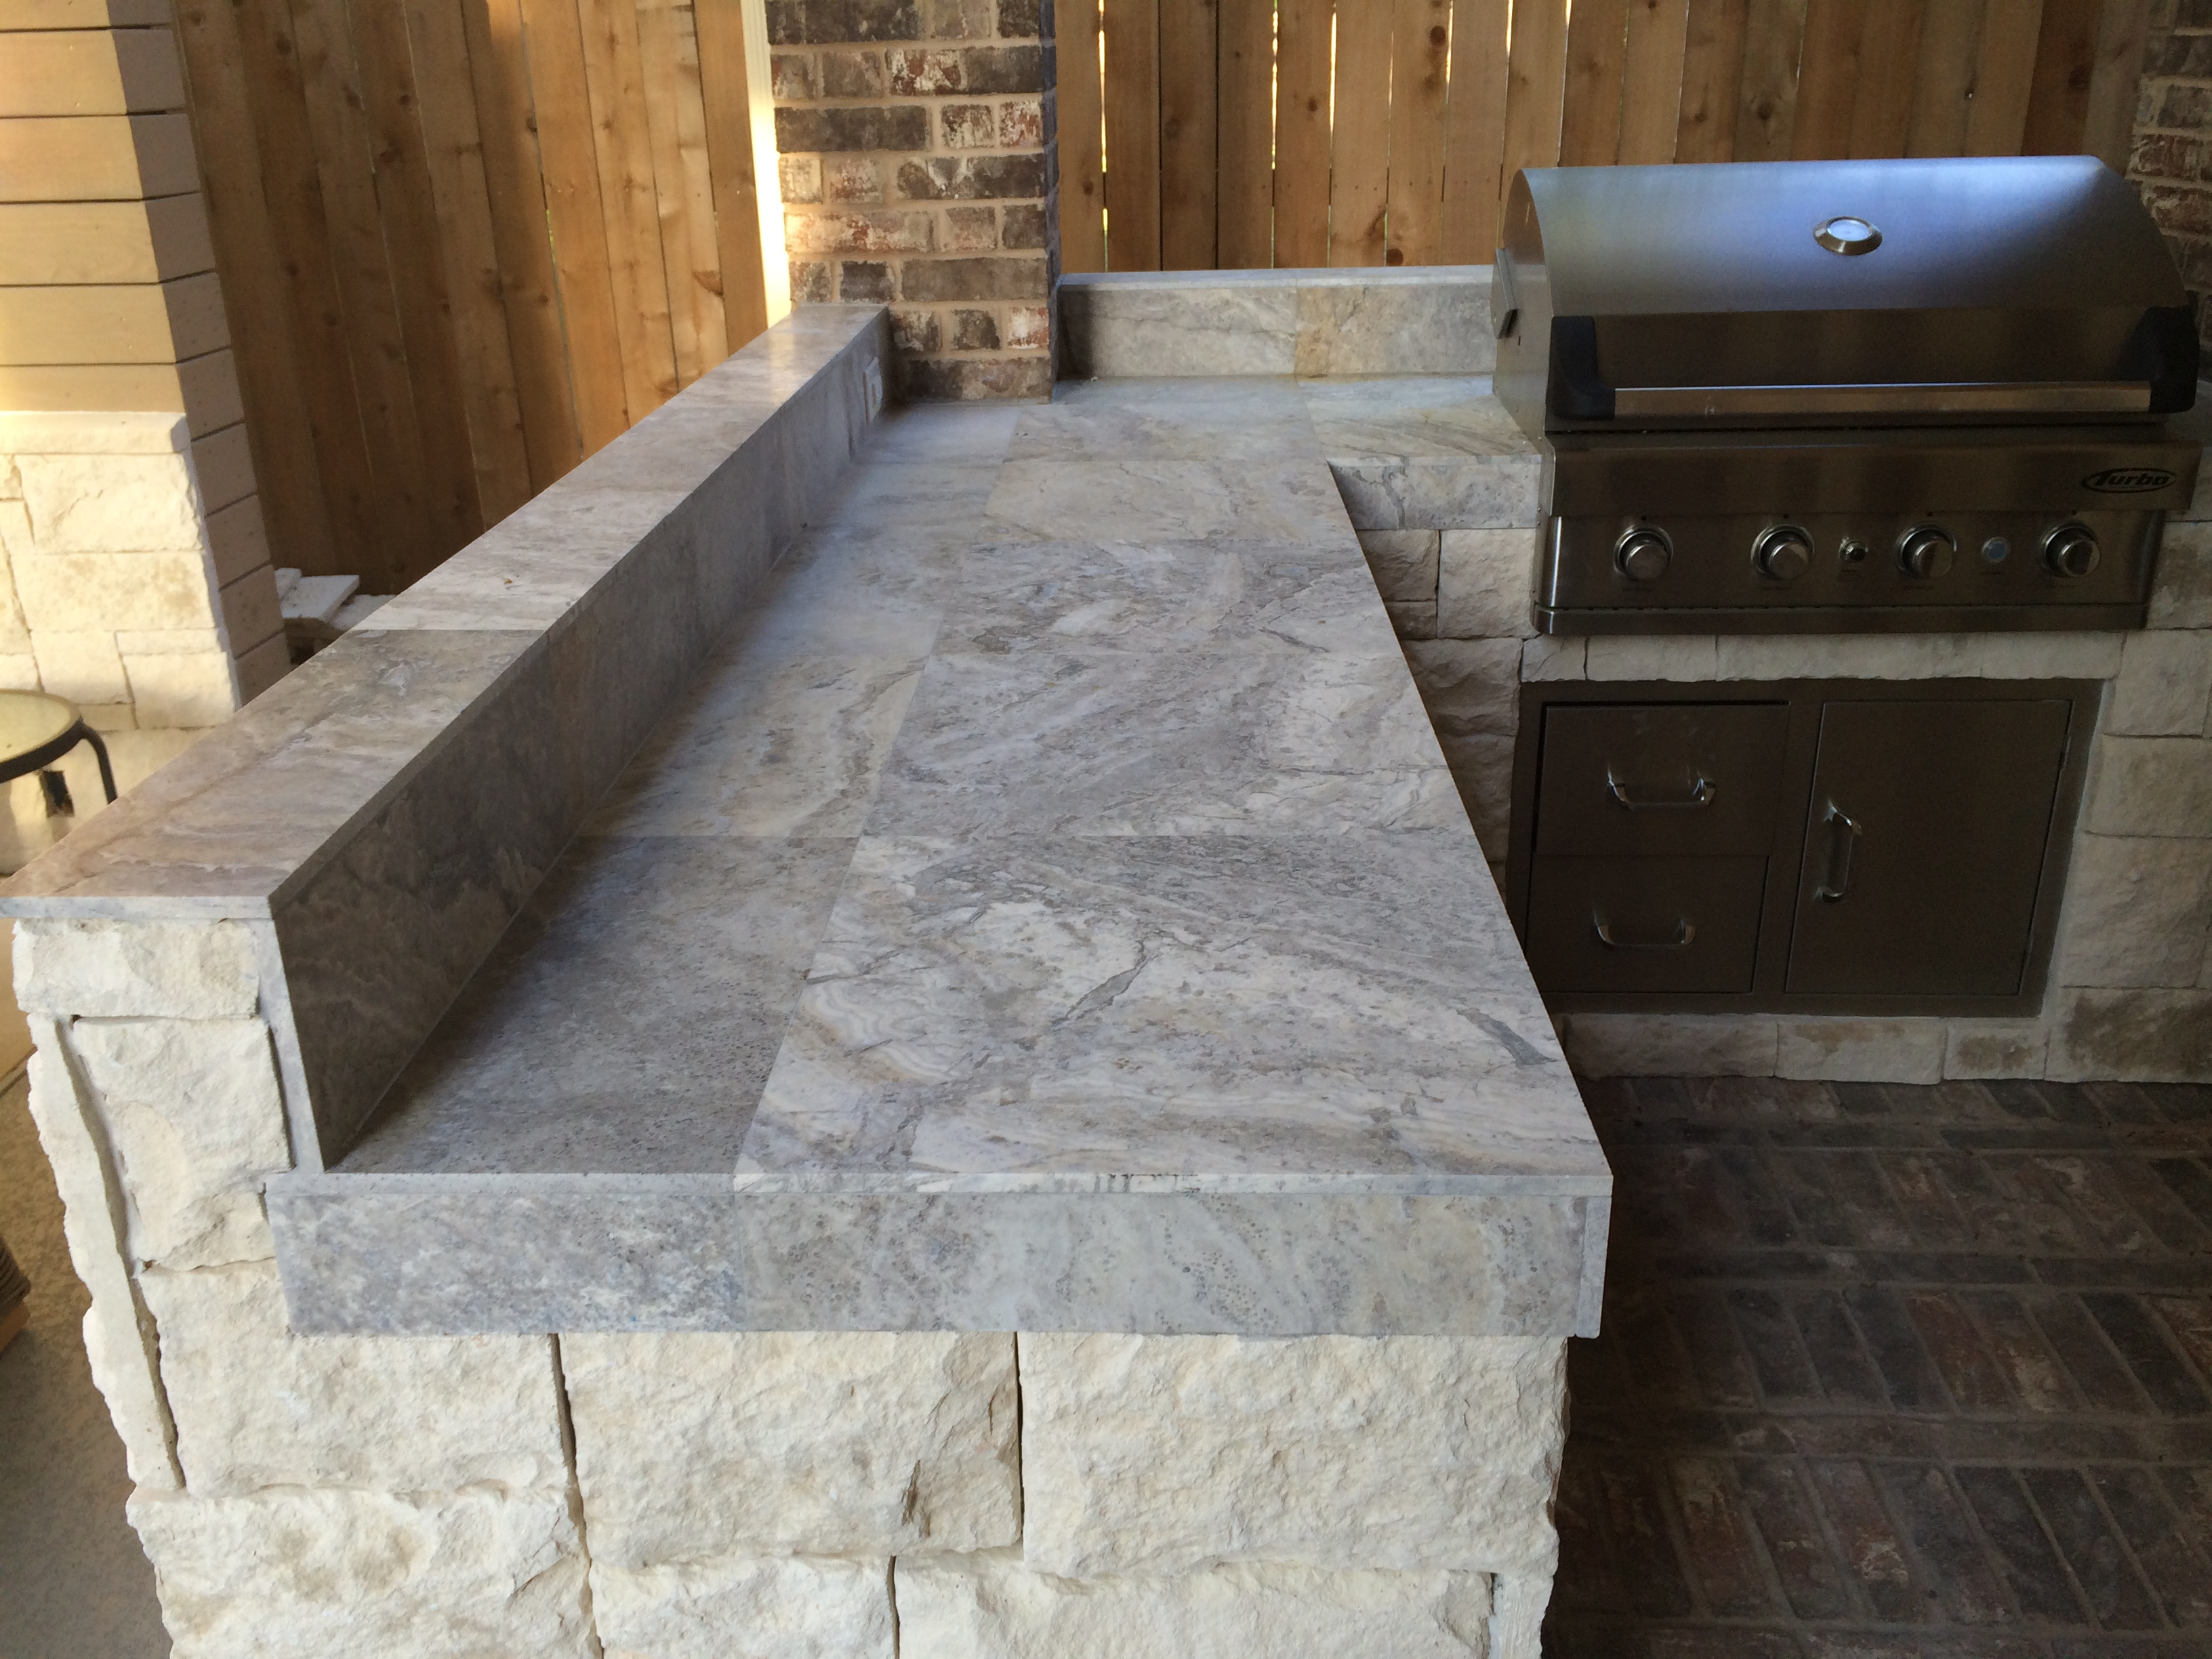 Kitchen Counter Tile Houston Outdoor Kitchen With Silver Travertine Tile Countertop